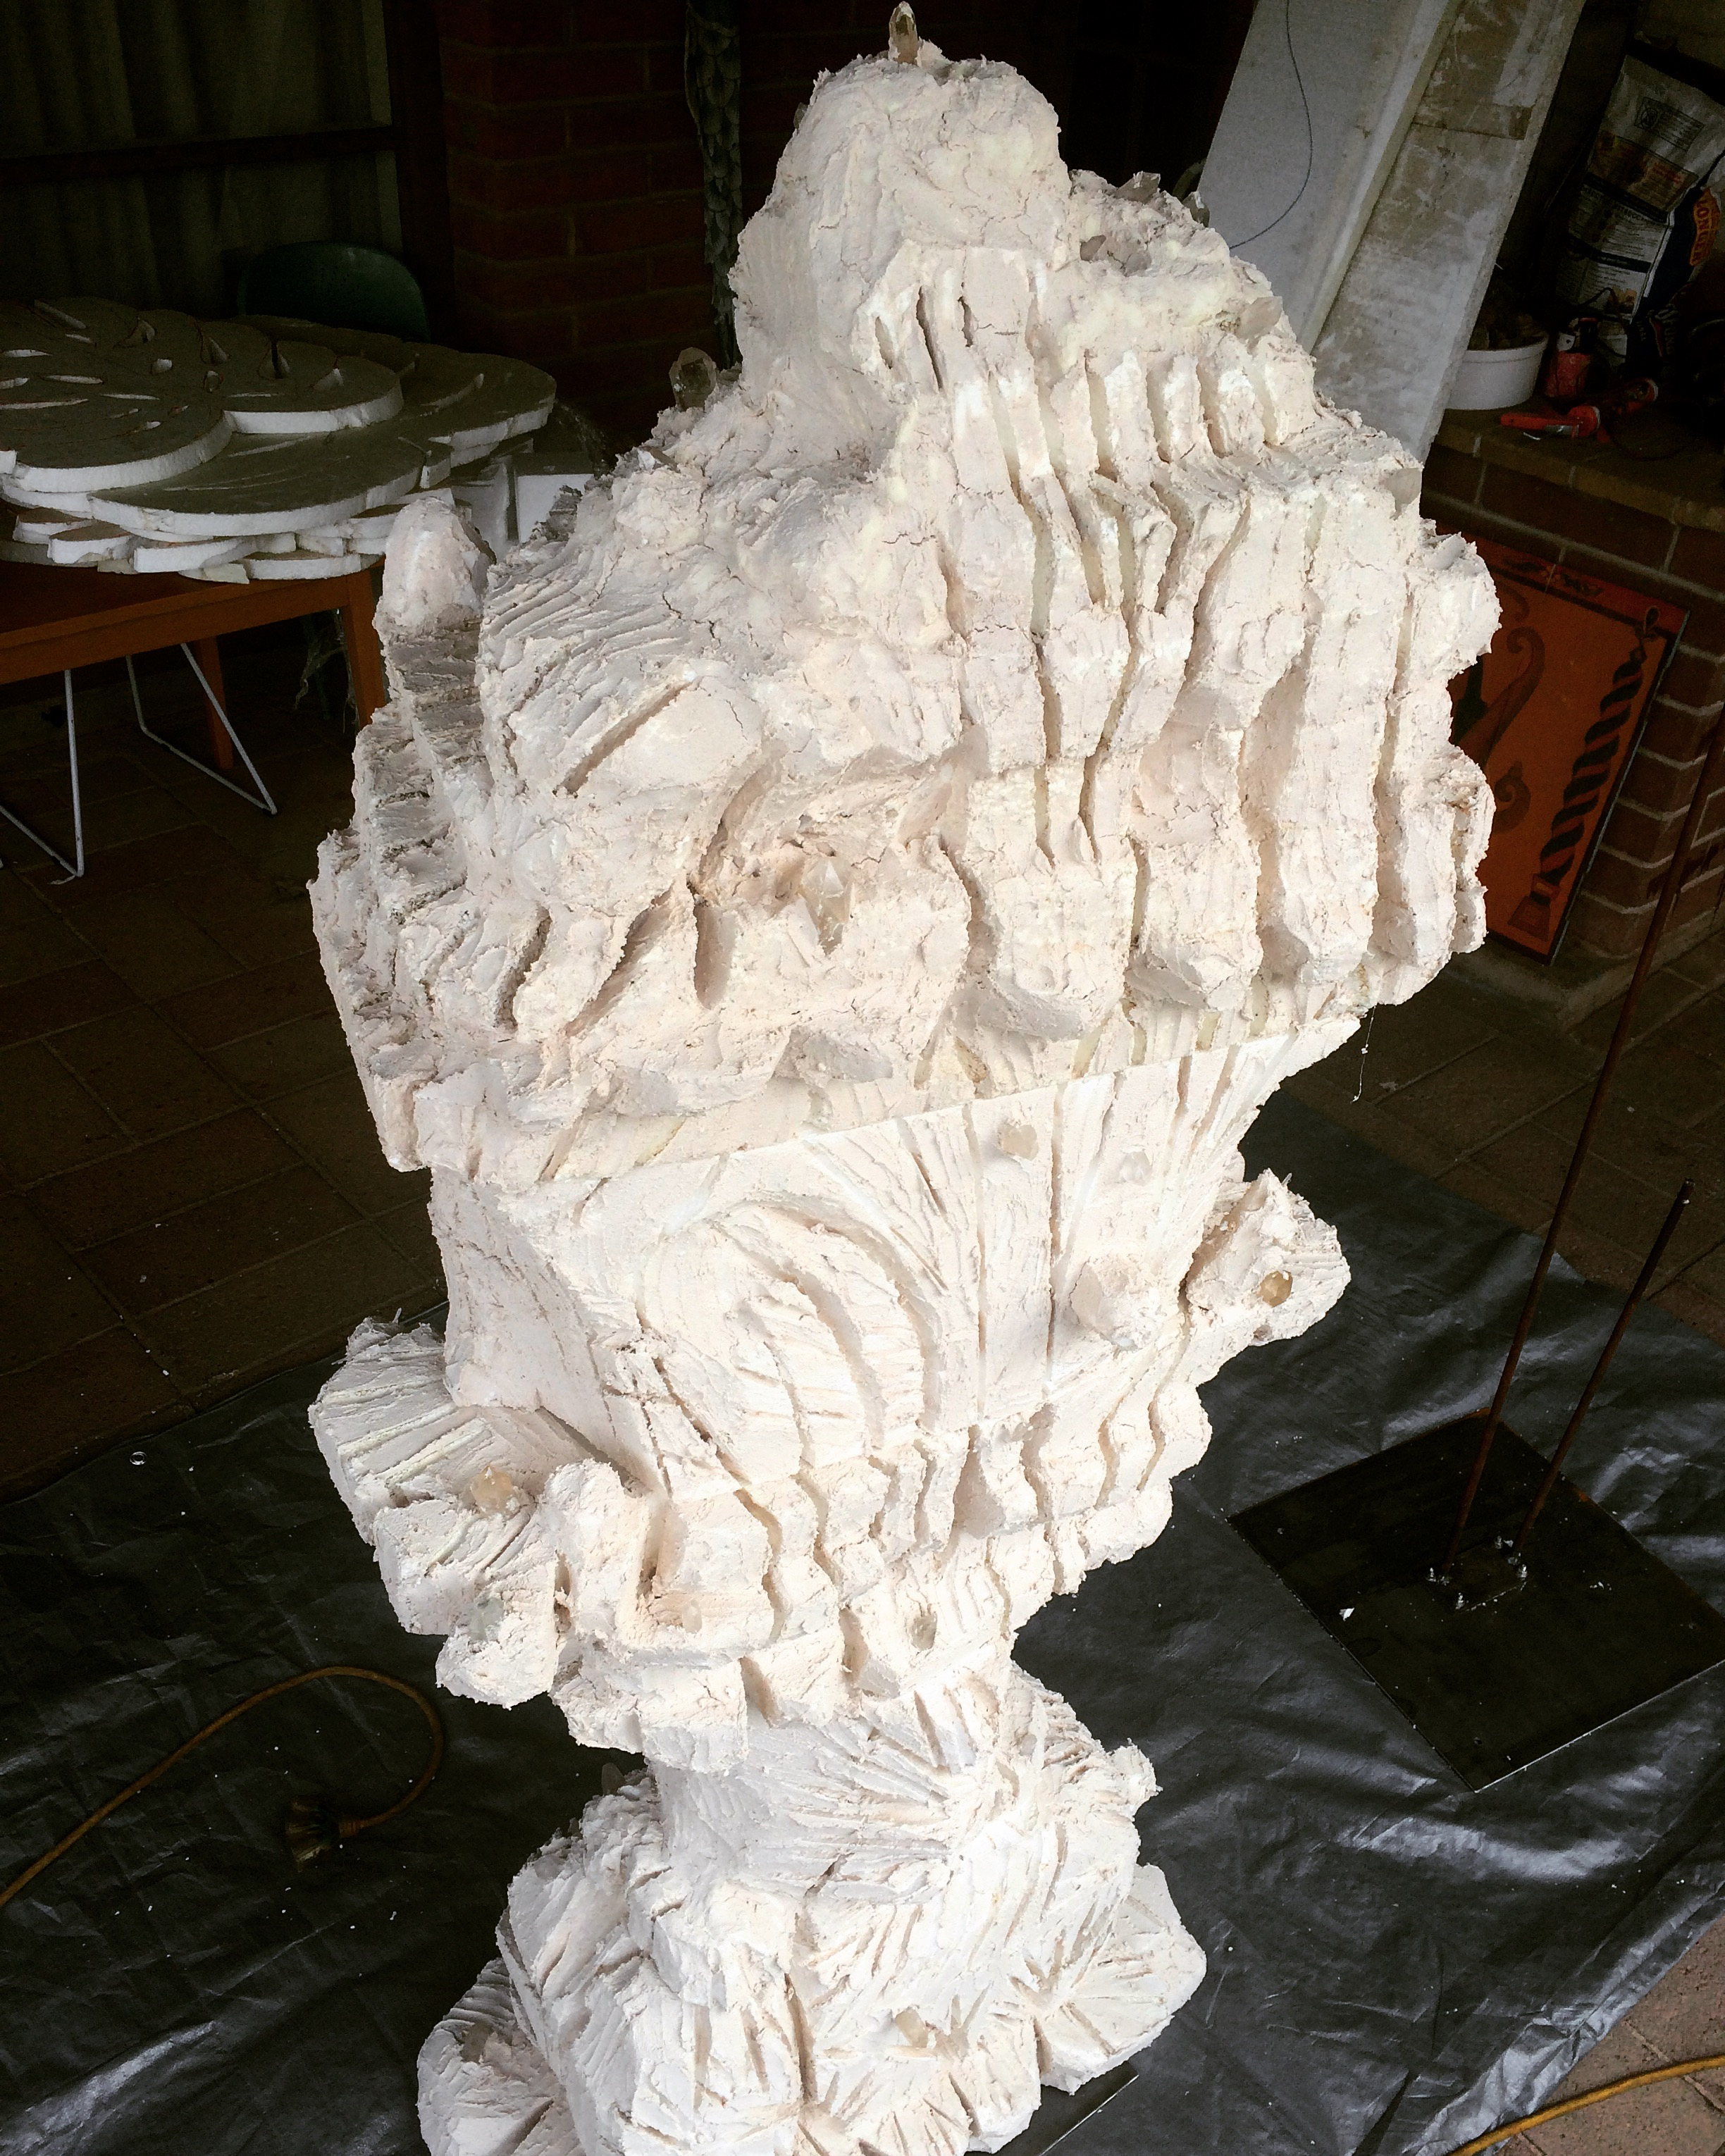 Super coral sculpture work in progress.  Magic Mountain